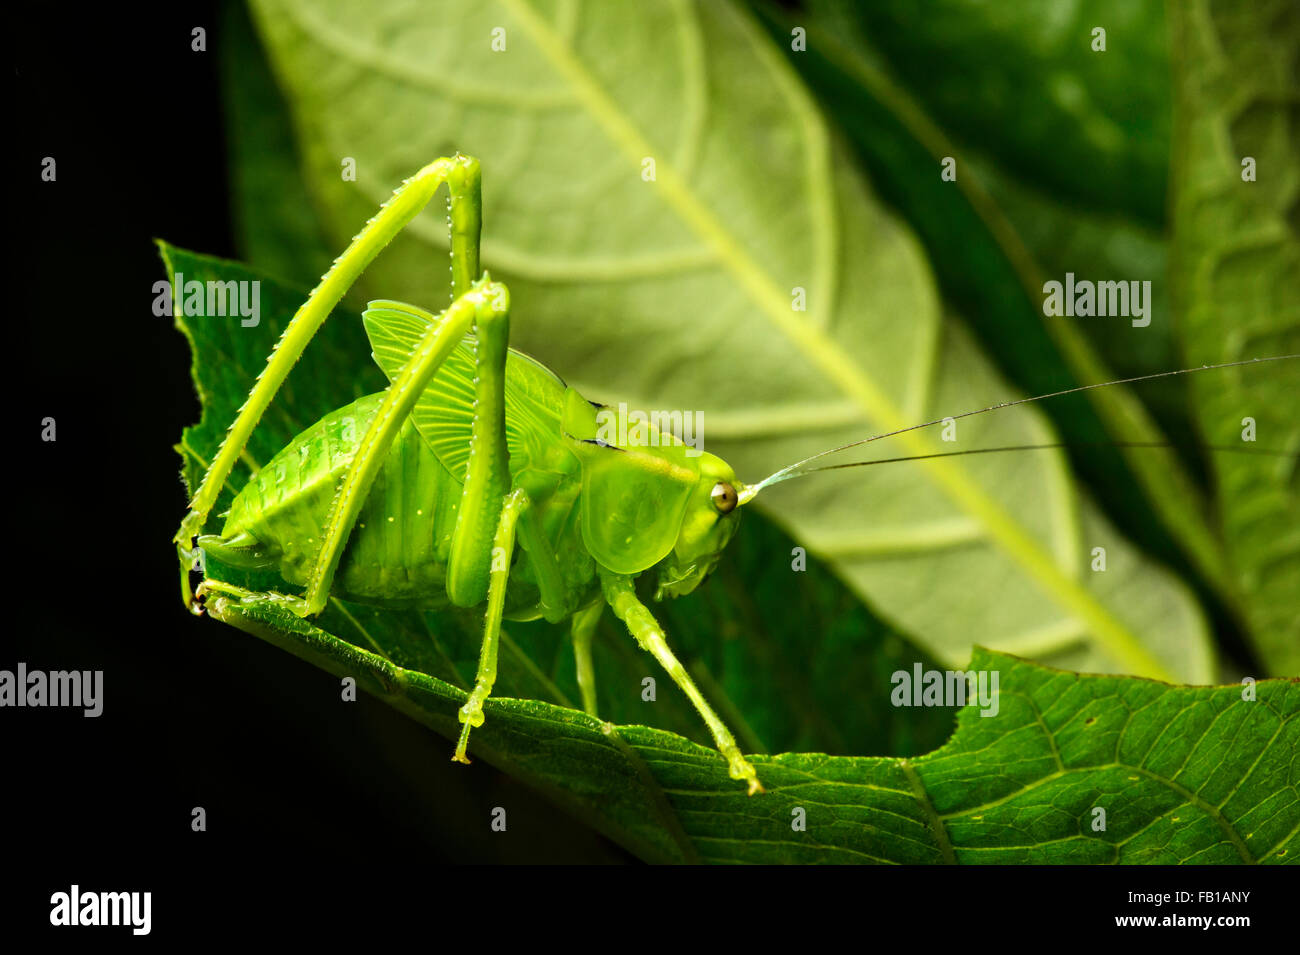 Nymph of a katydid (Tettigoniidae), Andean cloud forest, Mindo, Ecuador Stock Photo